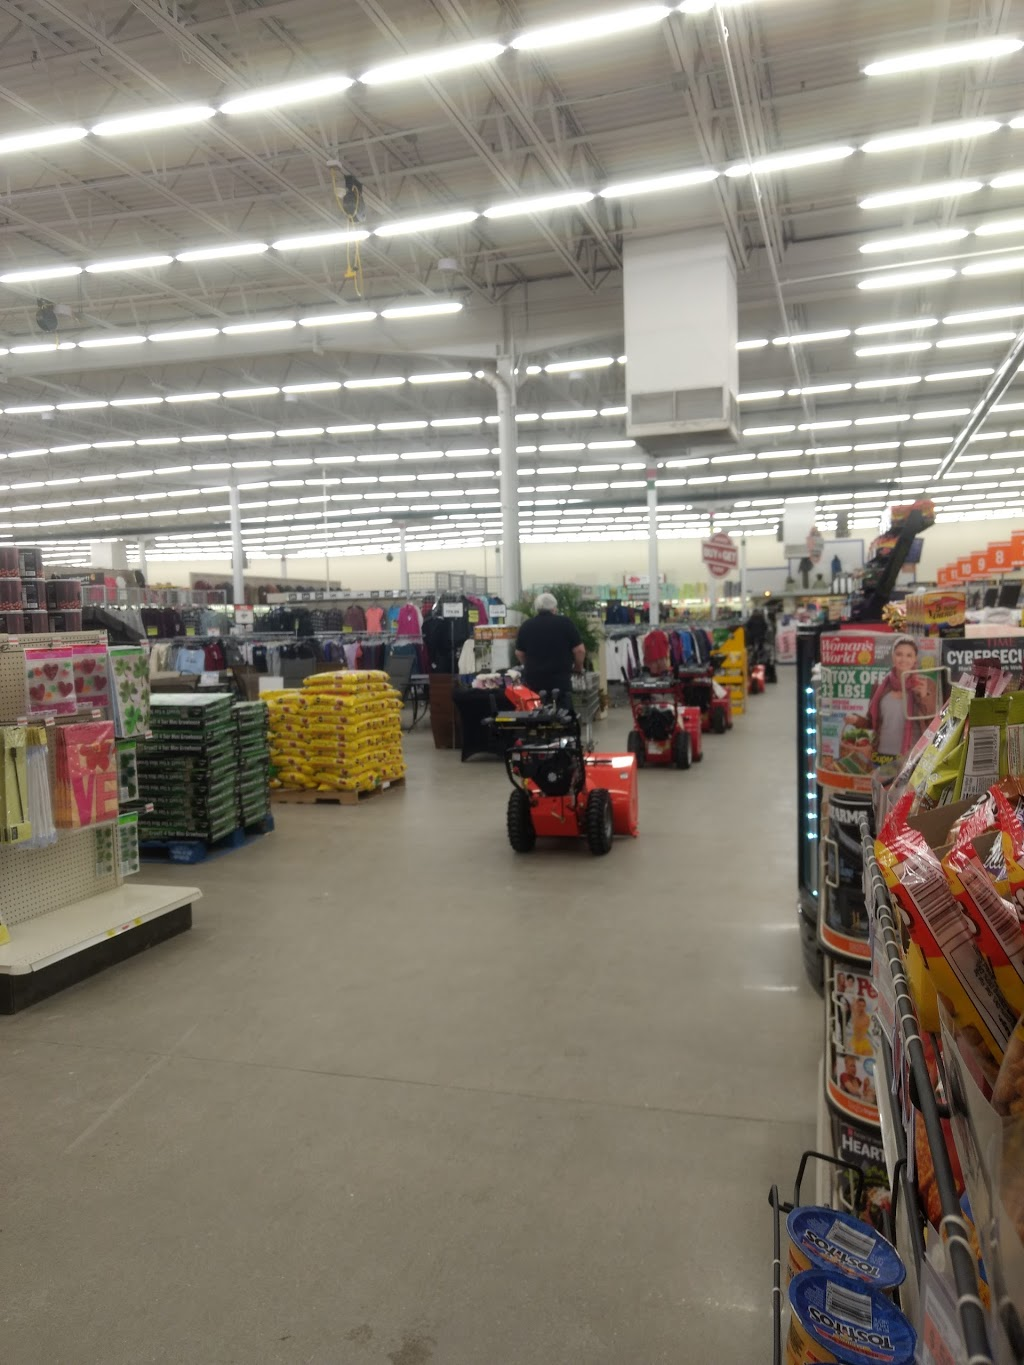 Fleet Farm - clothing store  | Photo 5 of 10 | Address: 3110 Eastern Ave, Plymouth, WI 53073, USA | Phone: (920) 893-5115